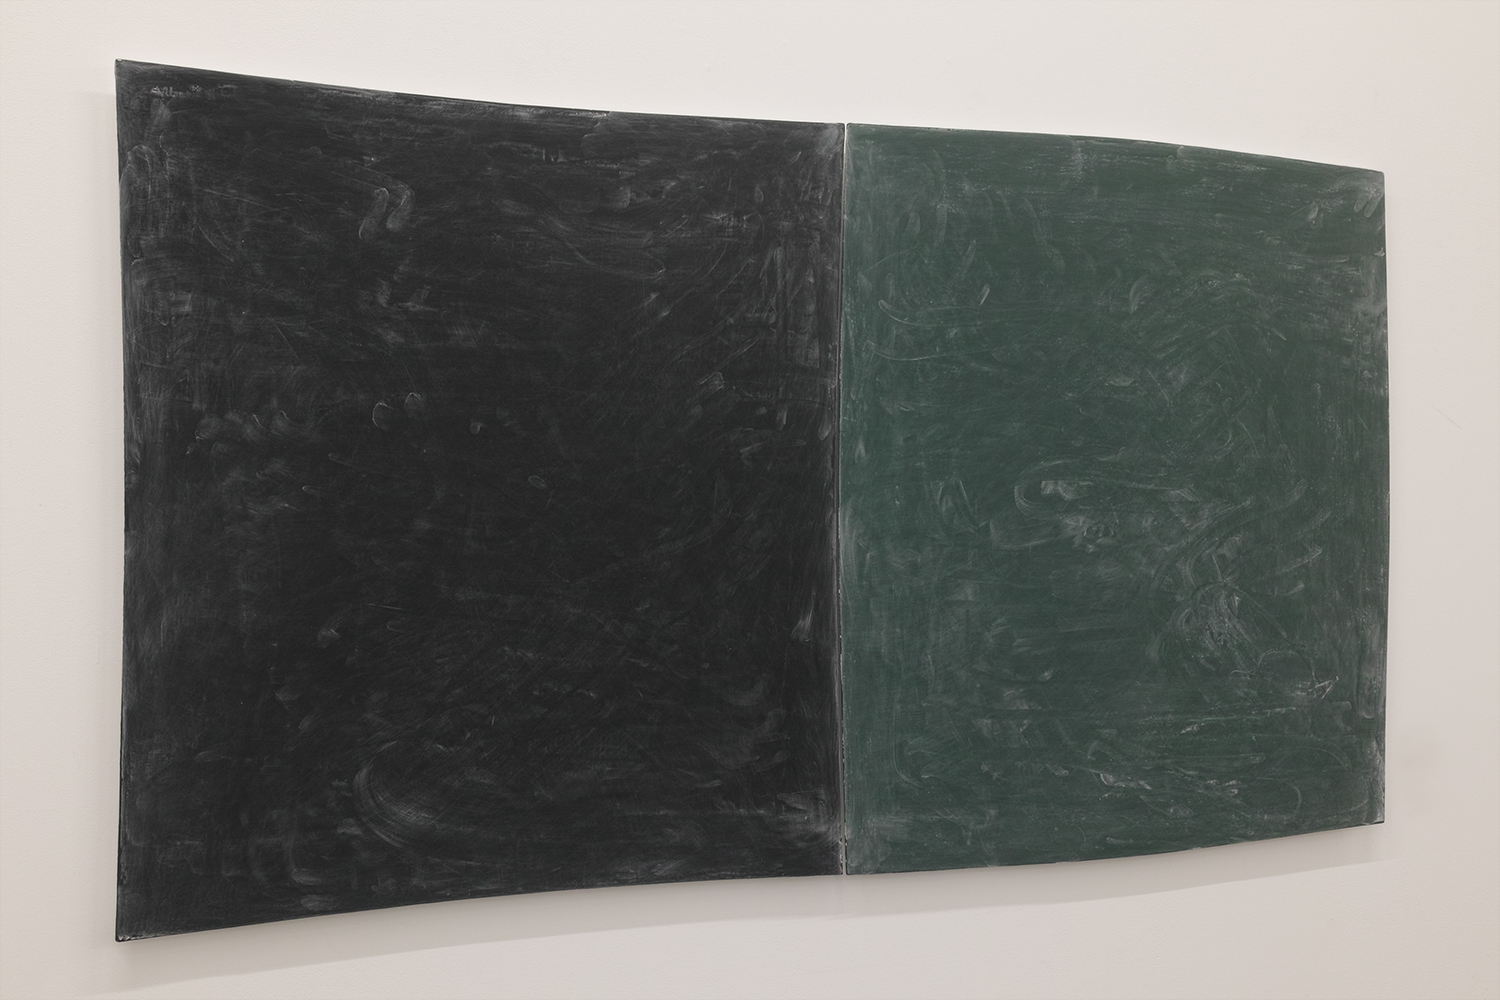 Drawing boards|Black board paint and chalkon panel |750 x 750 x 20, 770 x 770 x 20 mm|2020<br>¥200,000-400,000